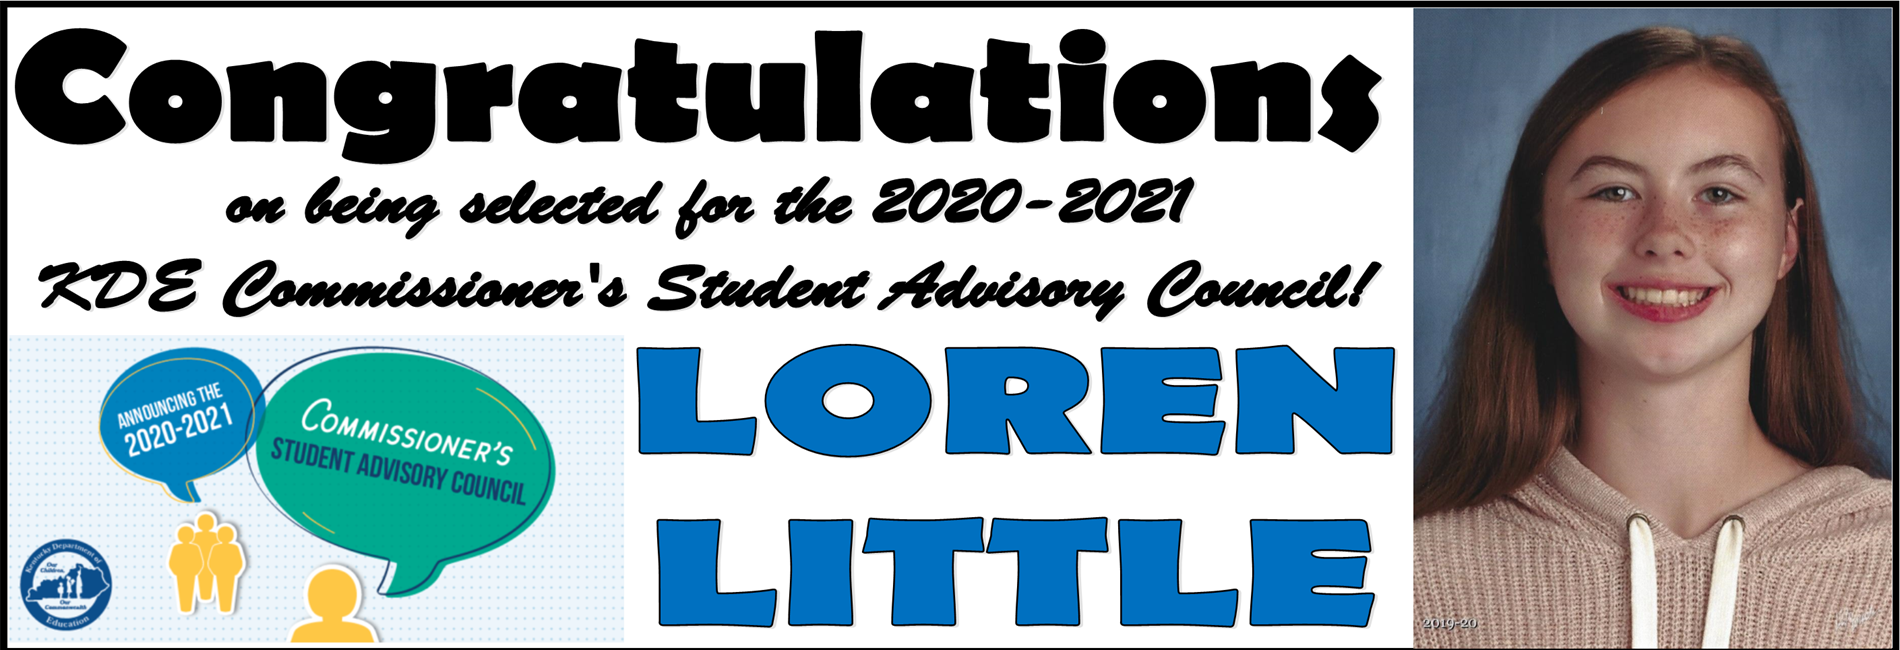 Congratulations to Loren Little for being selected to be on the Commissioner's Student Advisory Council!